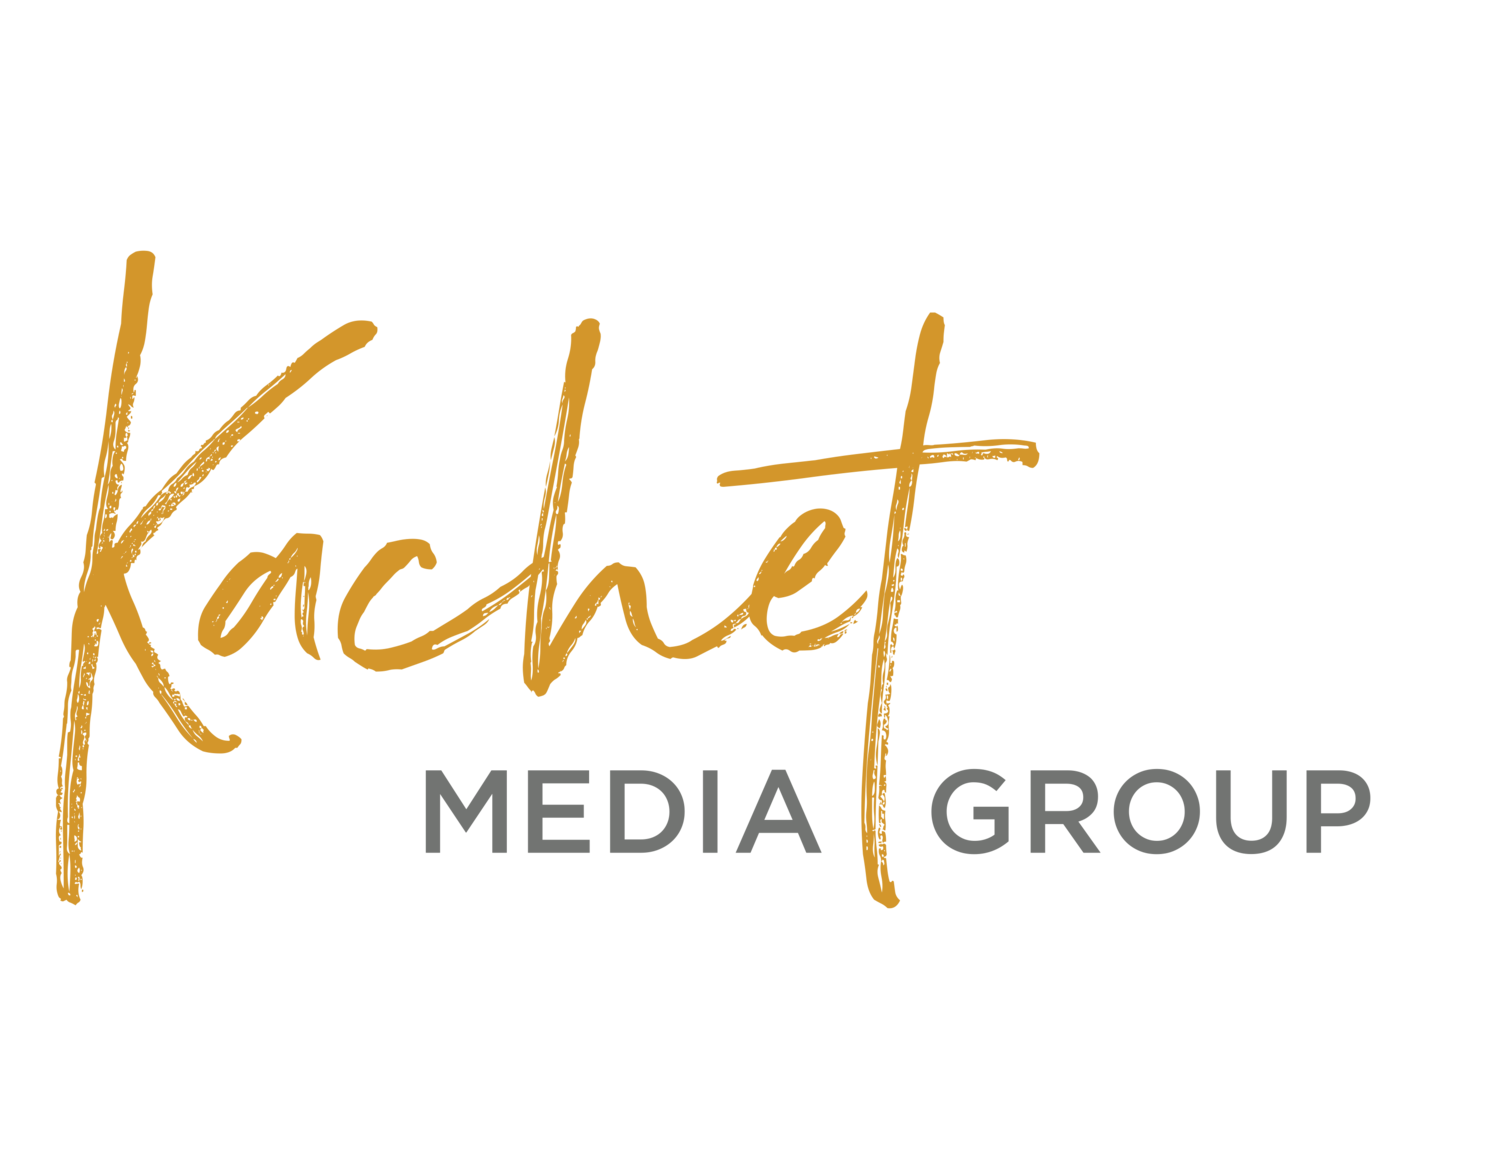 Kachet Media Group: Sacramento Social Media Agency